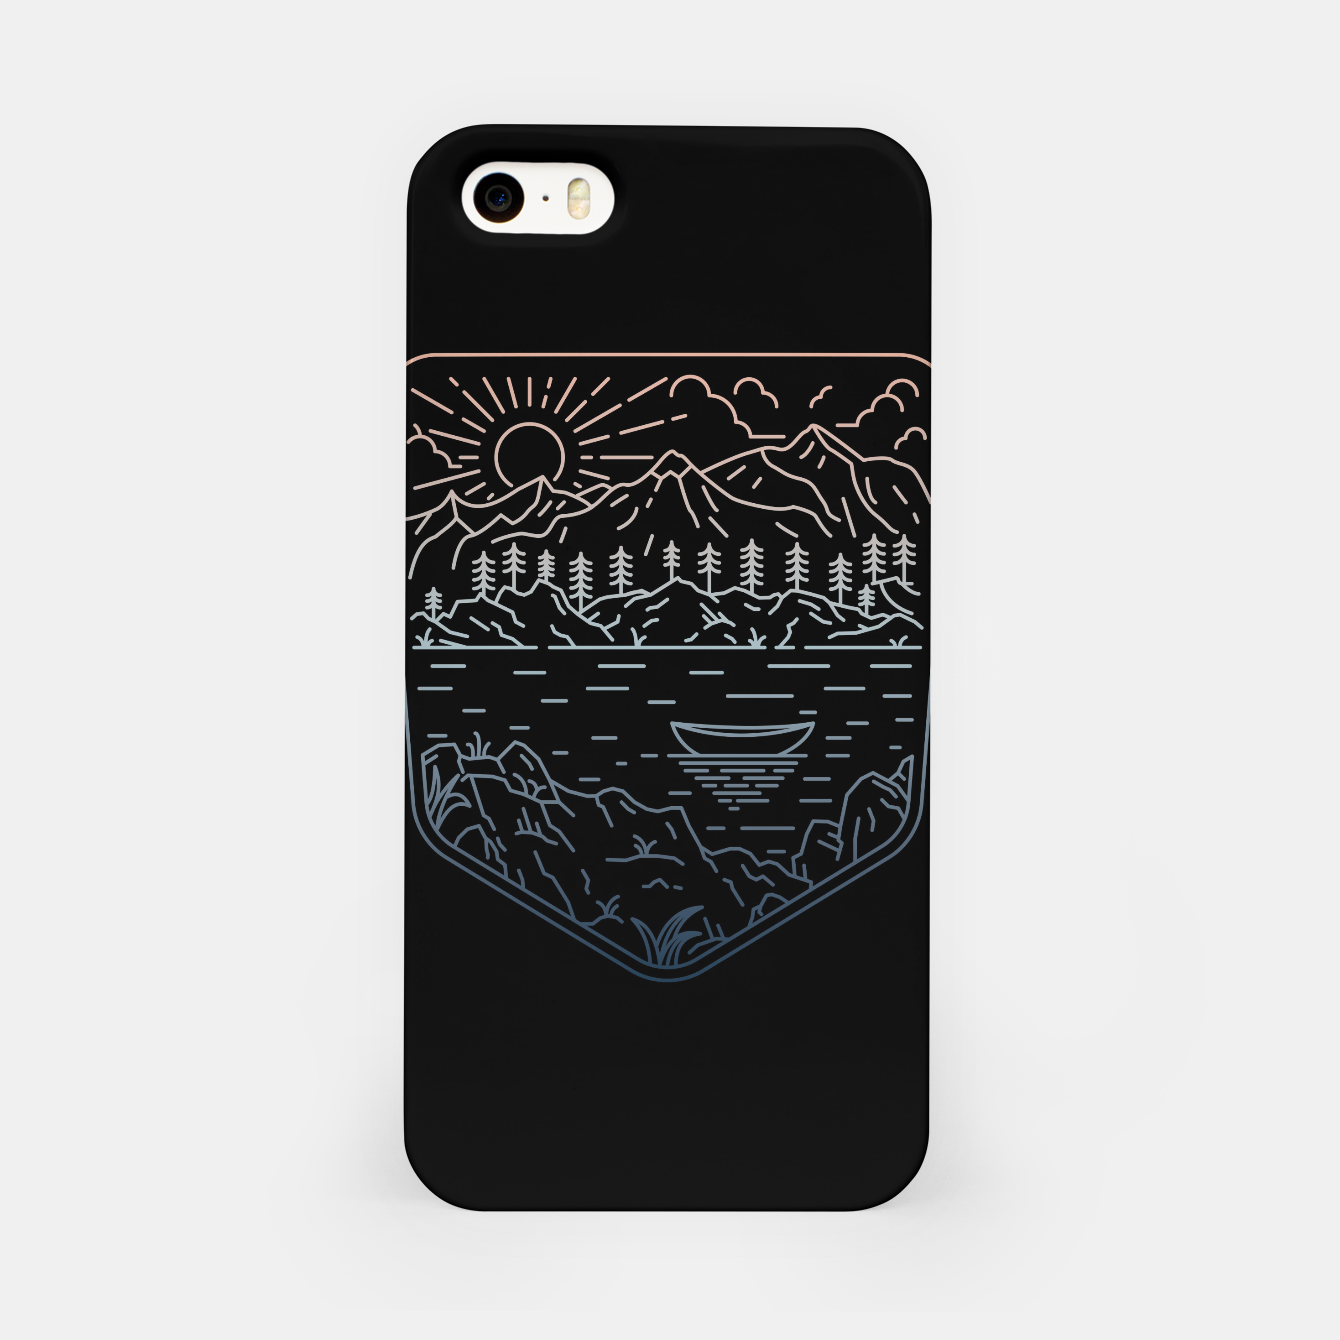 Foto Canoe iPhone Case - Live Heroes